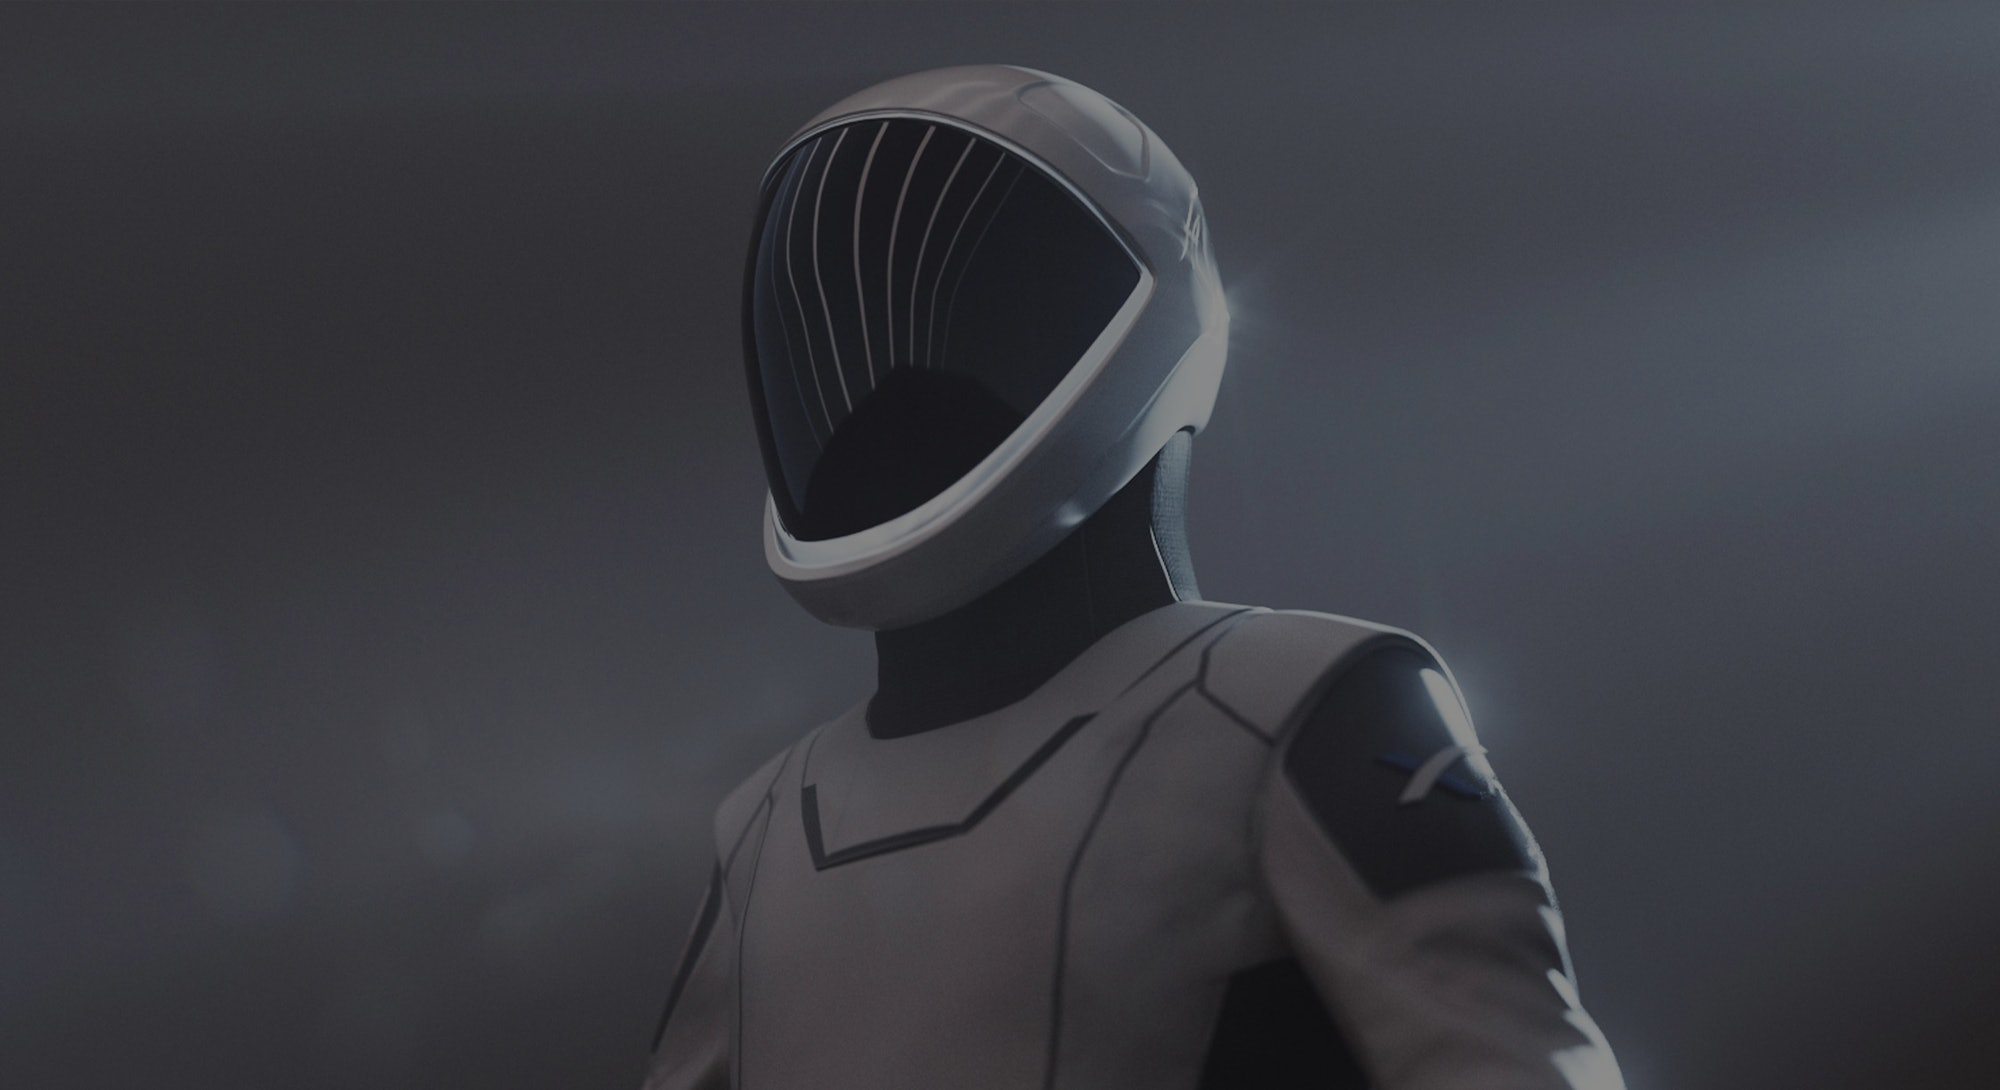 SpaceX spacesuit that the winners of the dearMoon contest will wear.